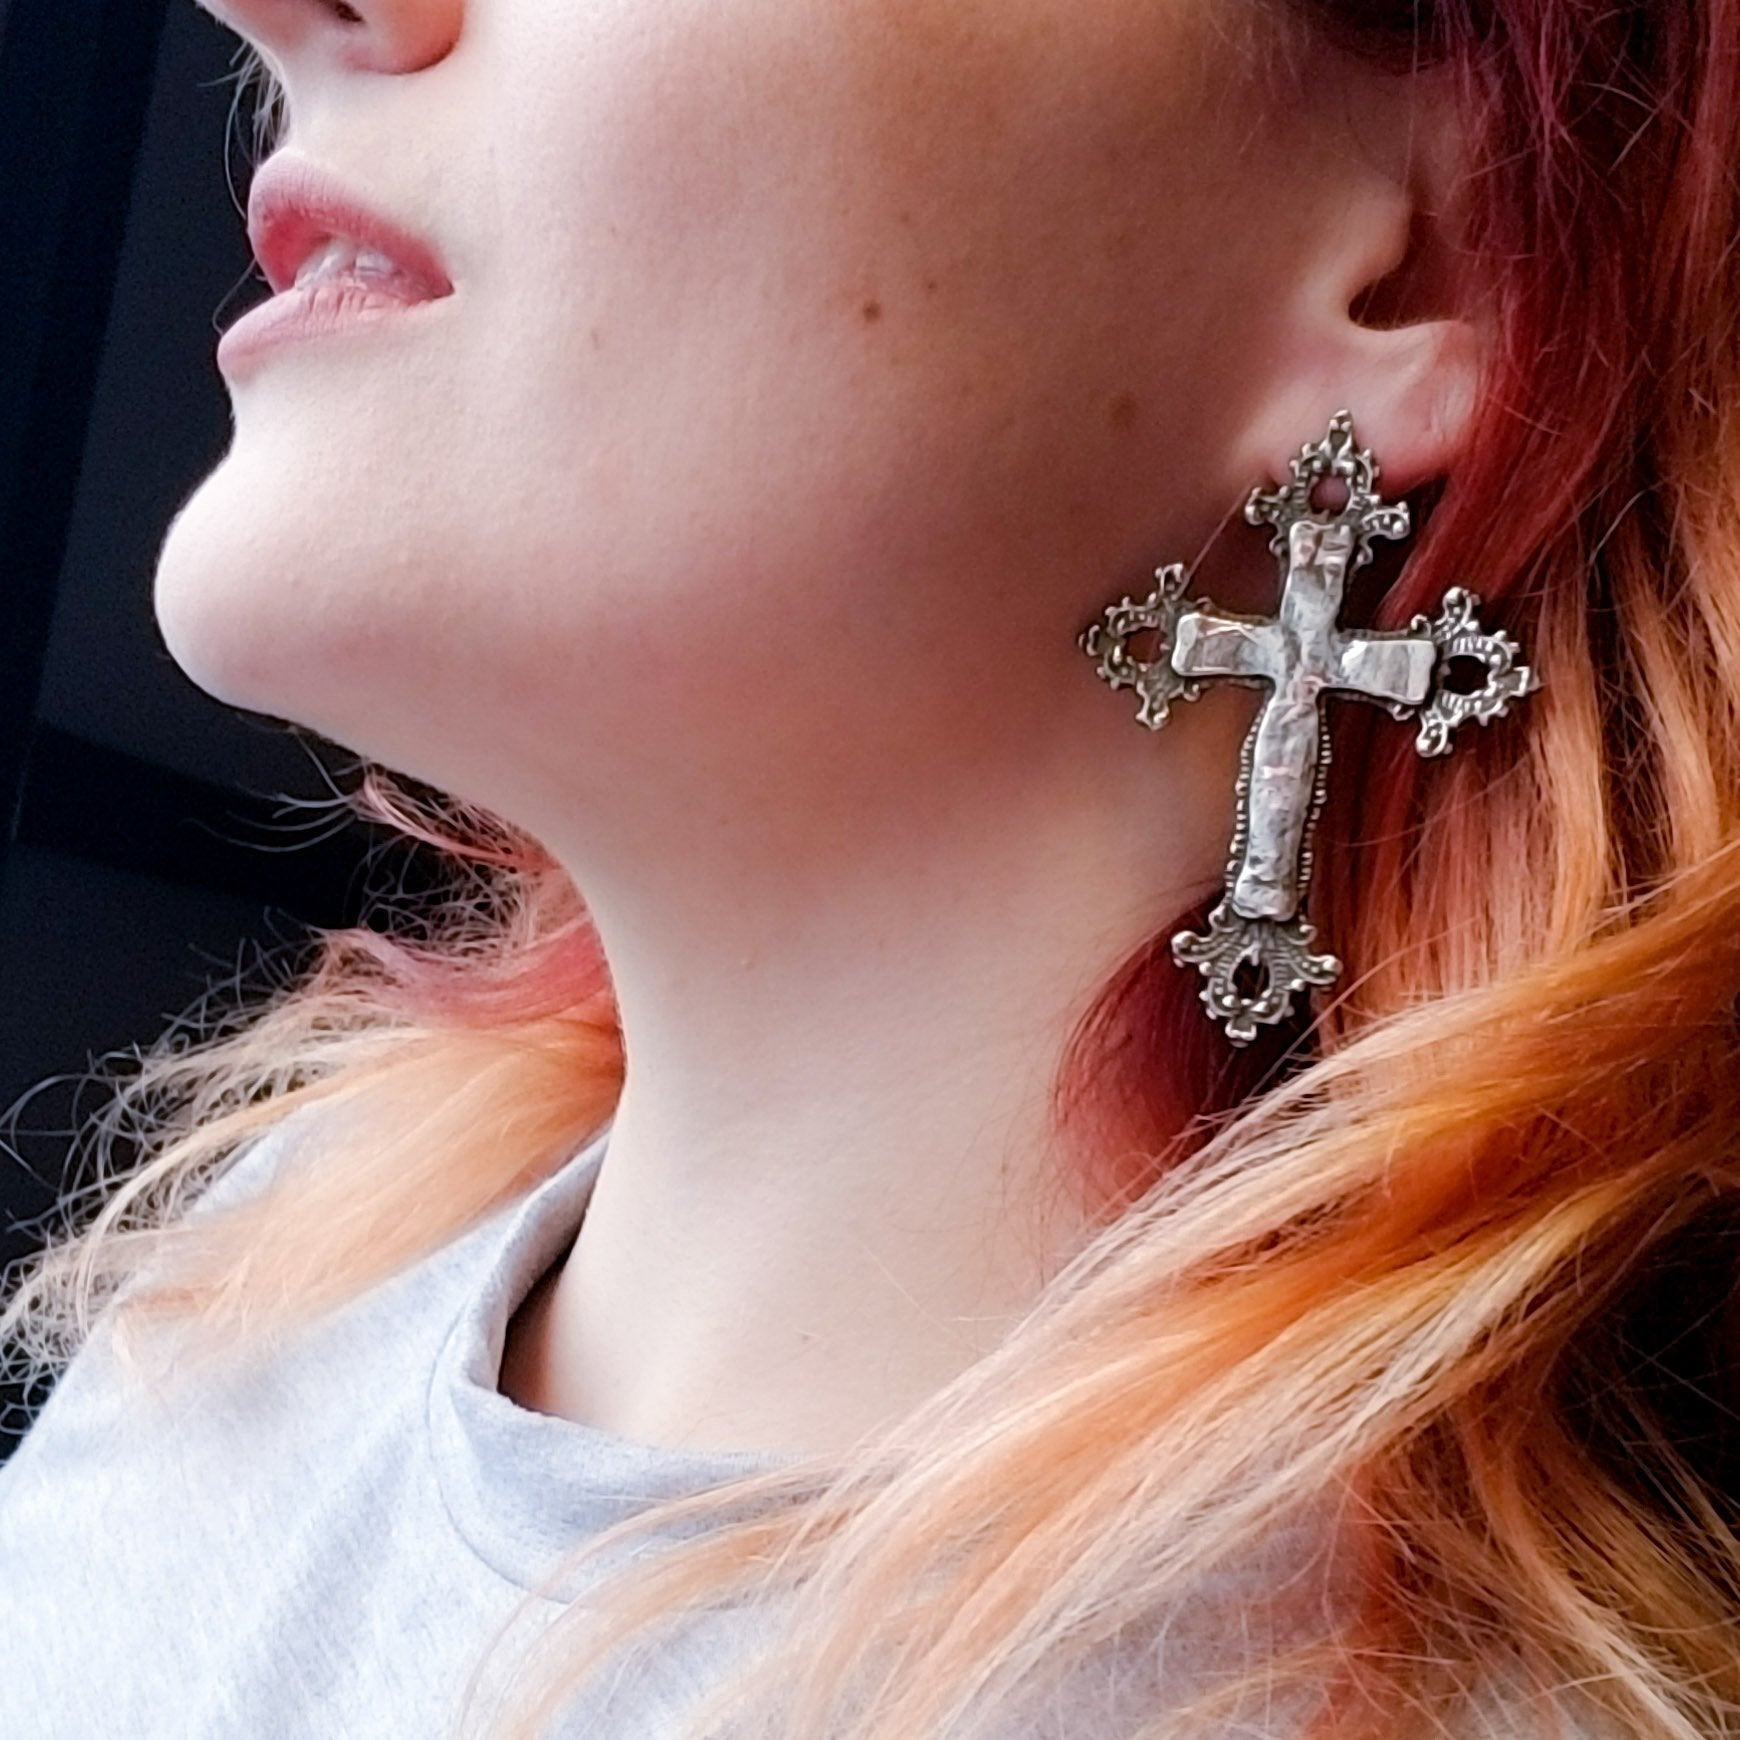 Large Baroque Cross Earrings - Inchoo Bijoux